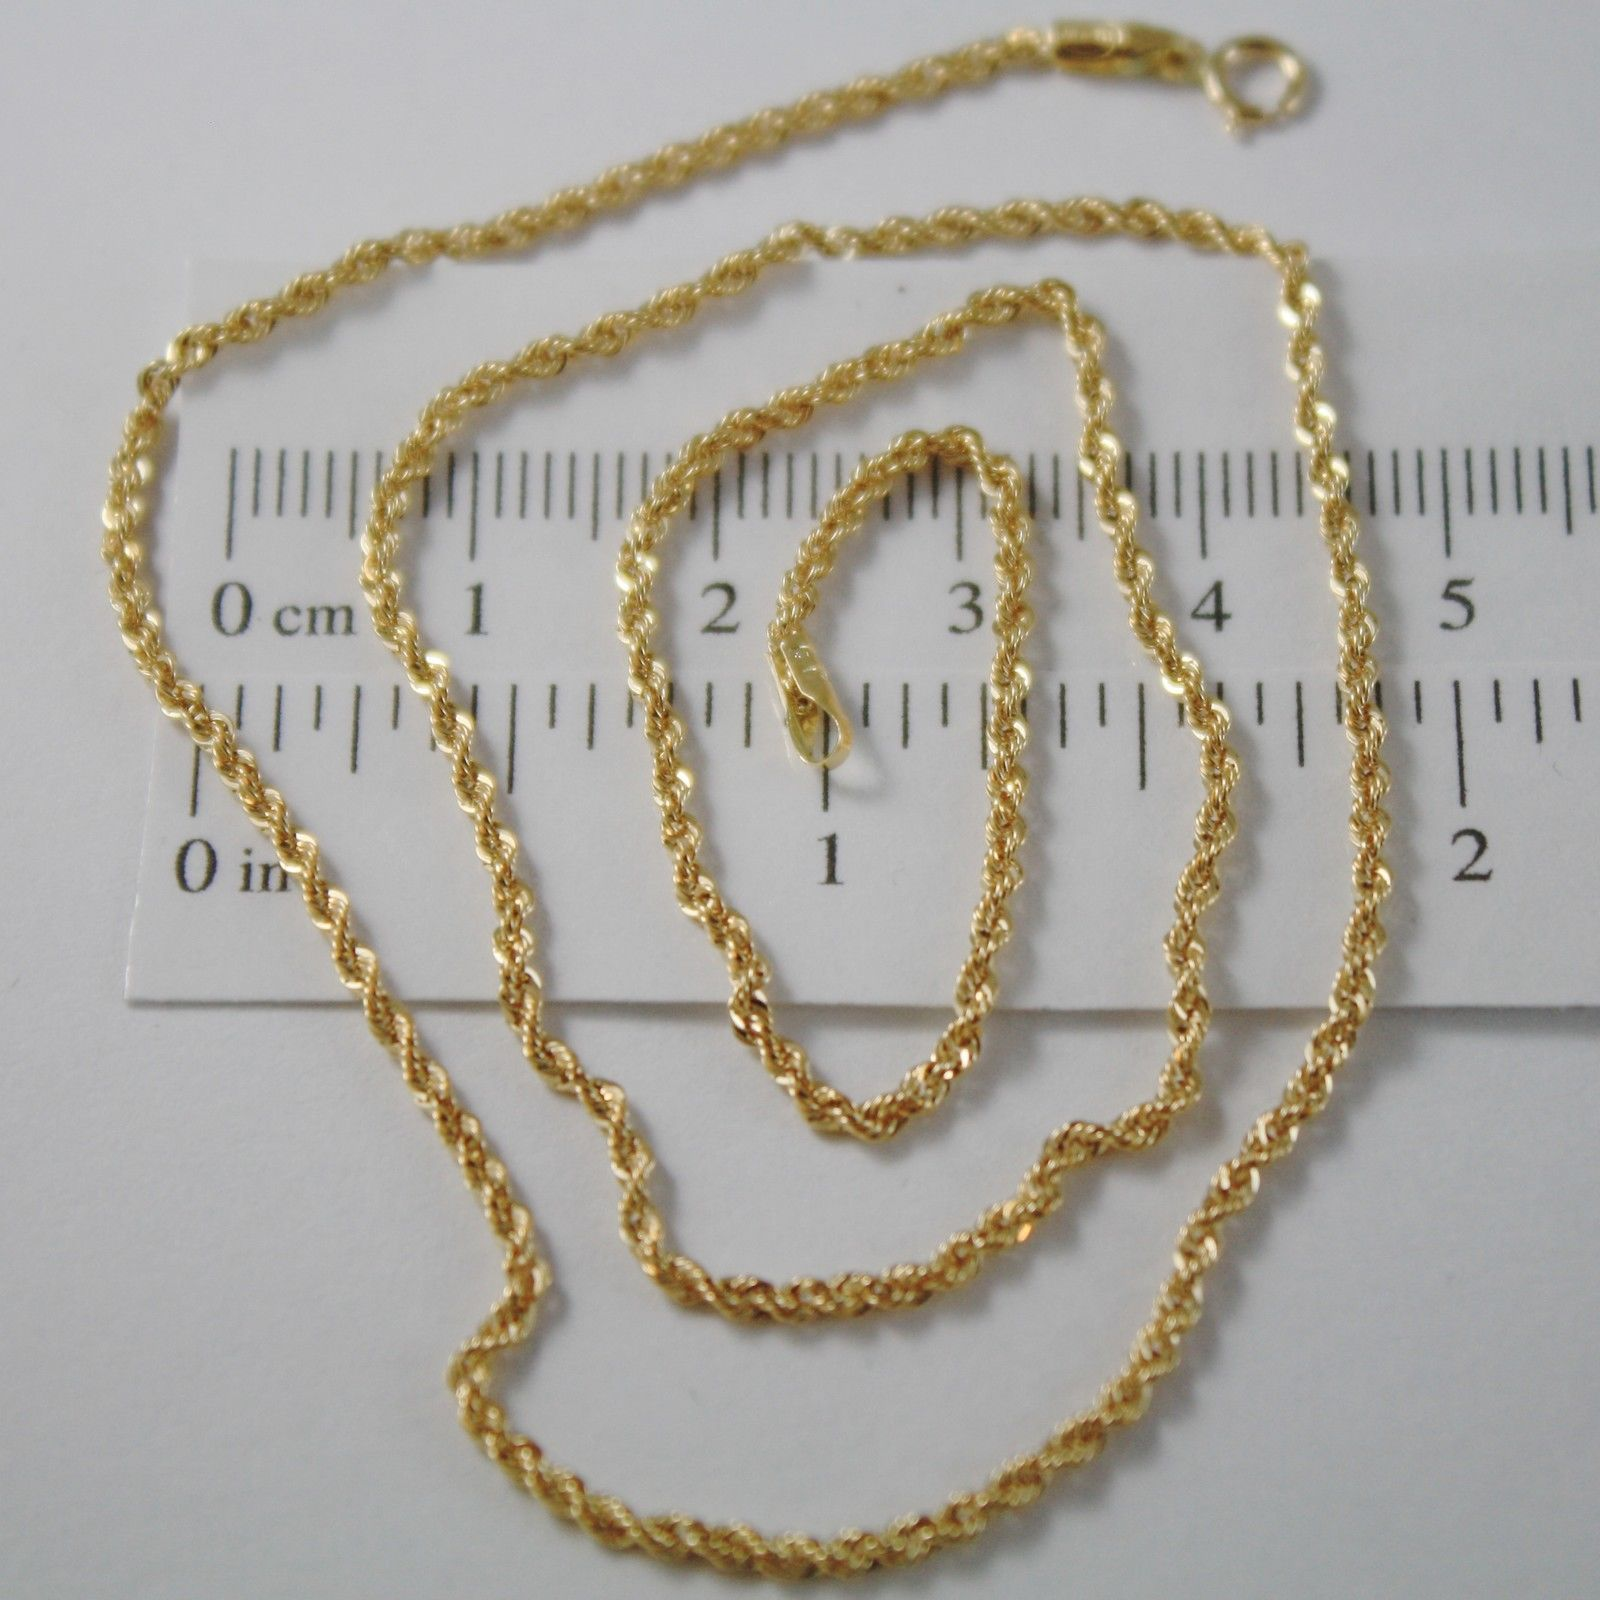 CADENA EN ORO AMARILLO 18K, CUERDA 2 MM, COLLAR, 50 CM, MADE IN ITALY, ITALIA